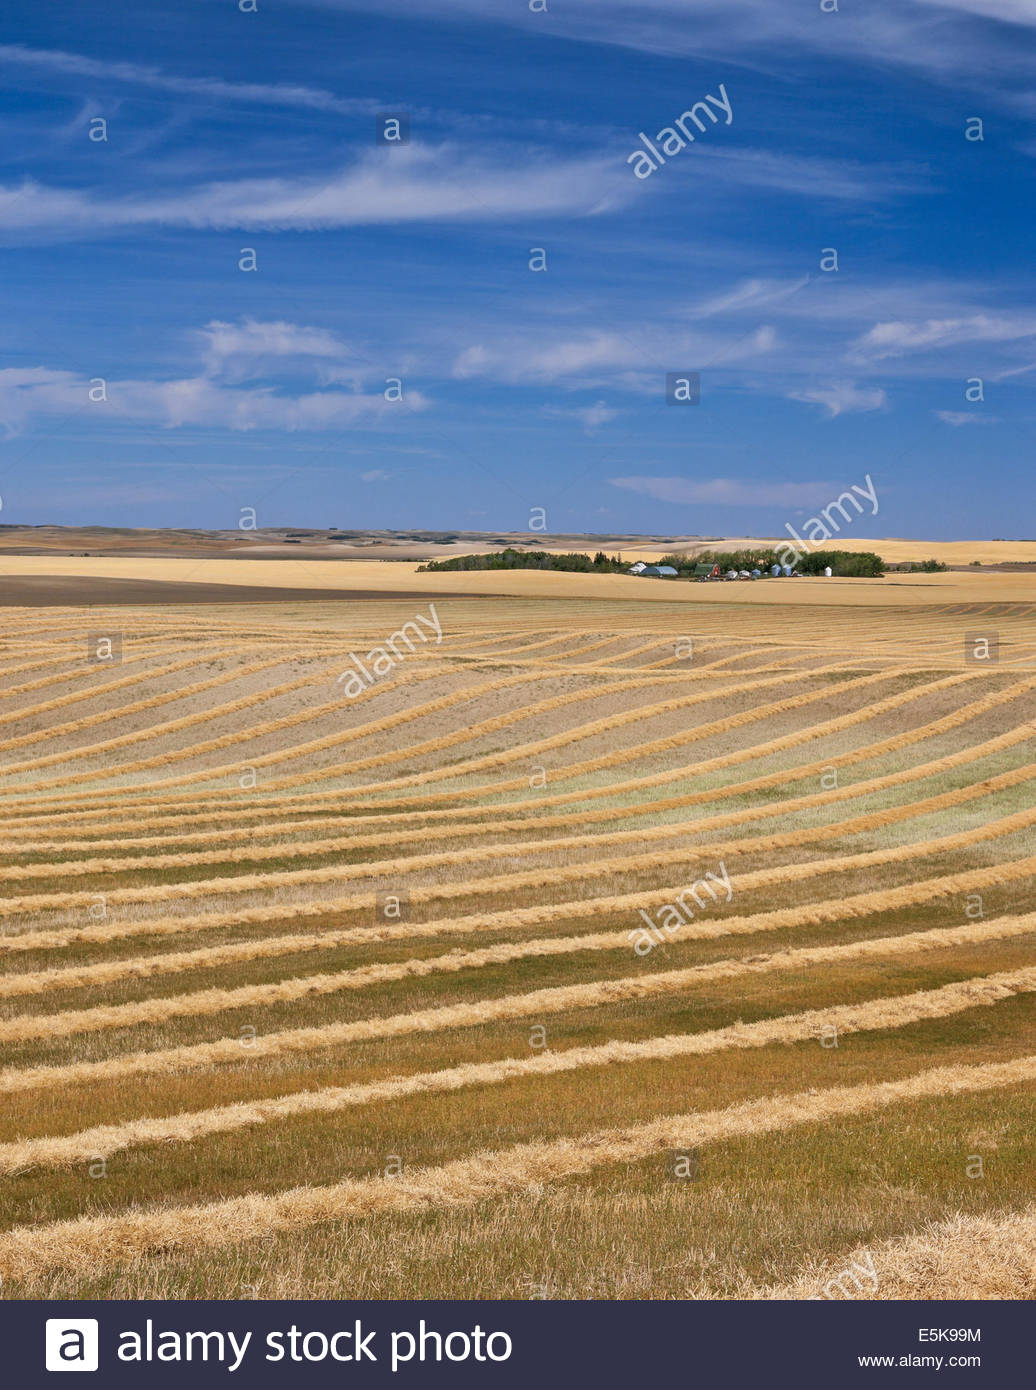 Swathed grain curing in the fields at harvest time near Saint Denis in Saskatchewan Canada - Stock Image